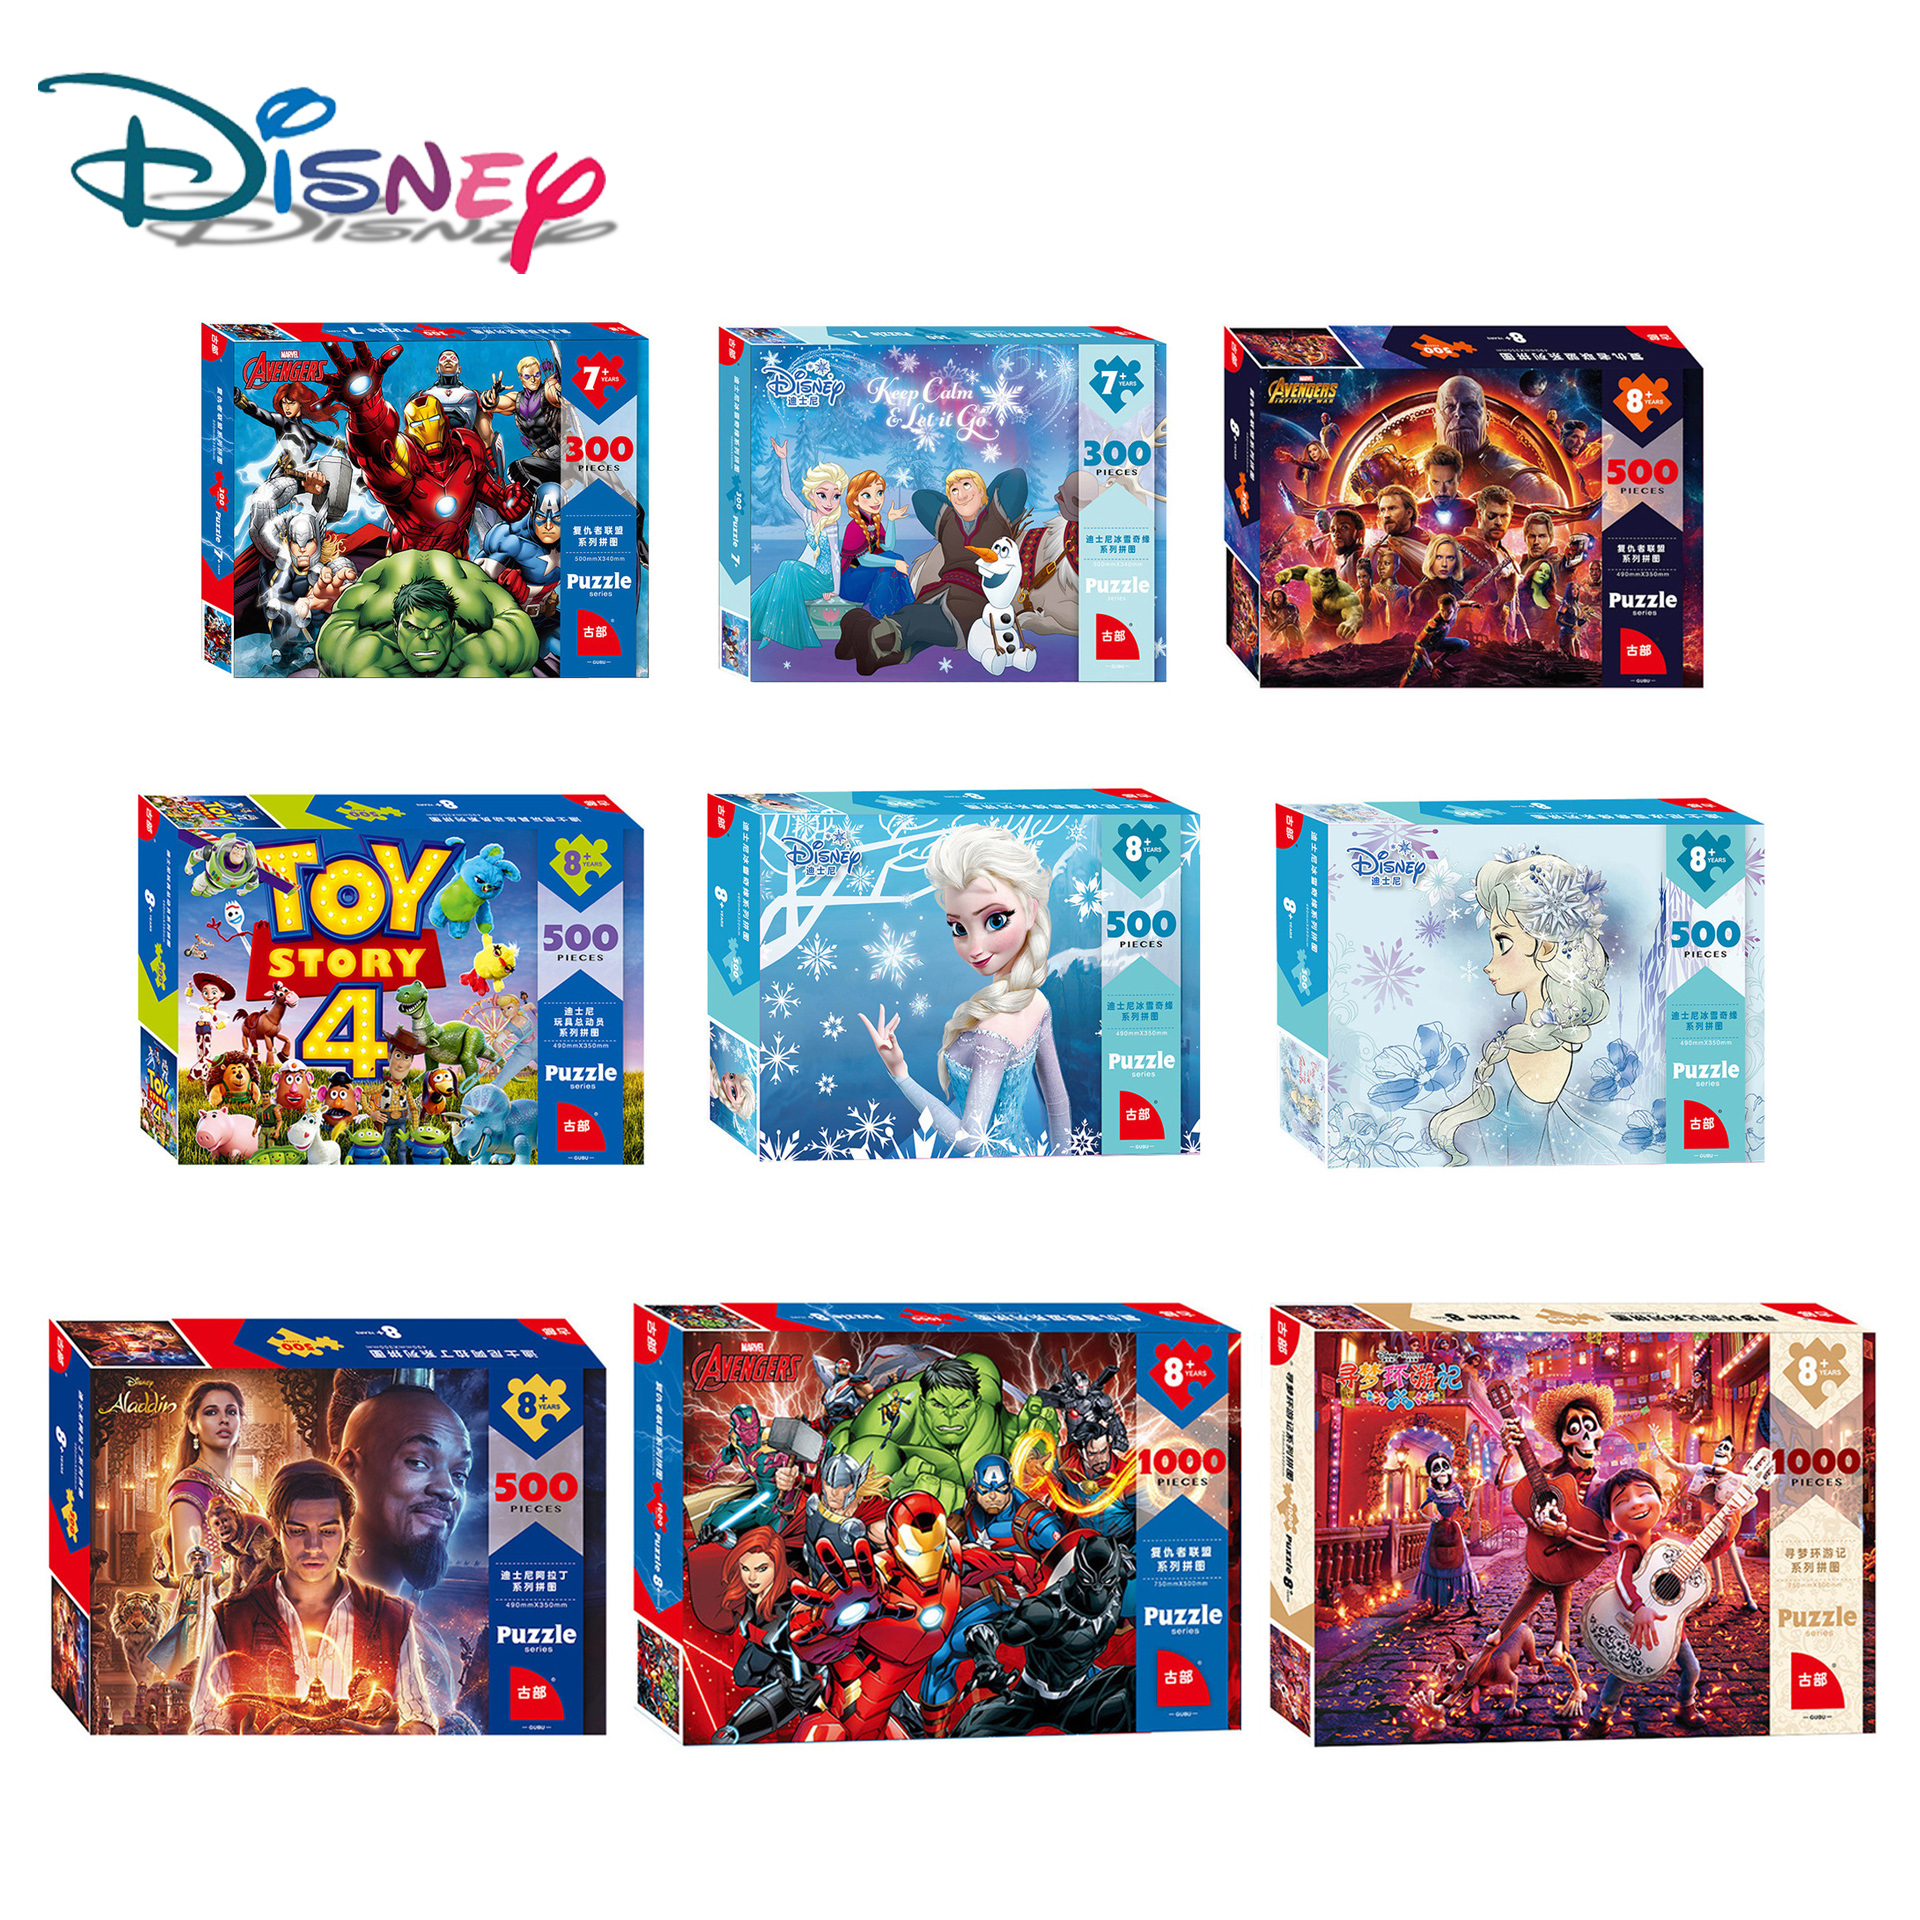 Disney 1000Pcs/500Pcs/300Pcs Toy Story Puzzle Coco Marvel Avengers Frozen 2 Puzzles Toys Aladdin And The Magic Lamp